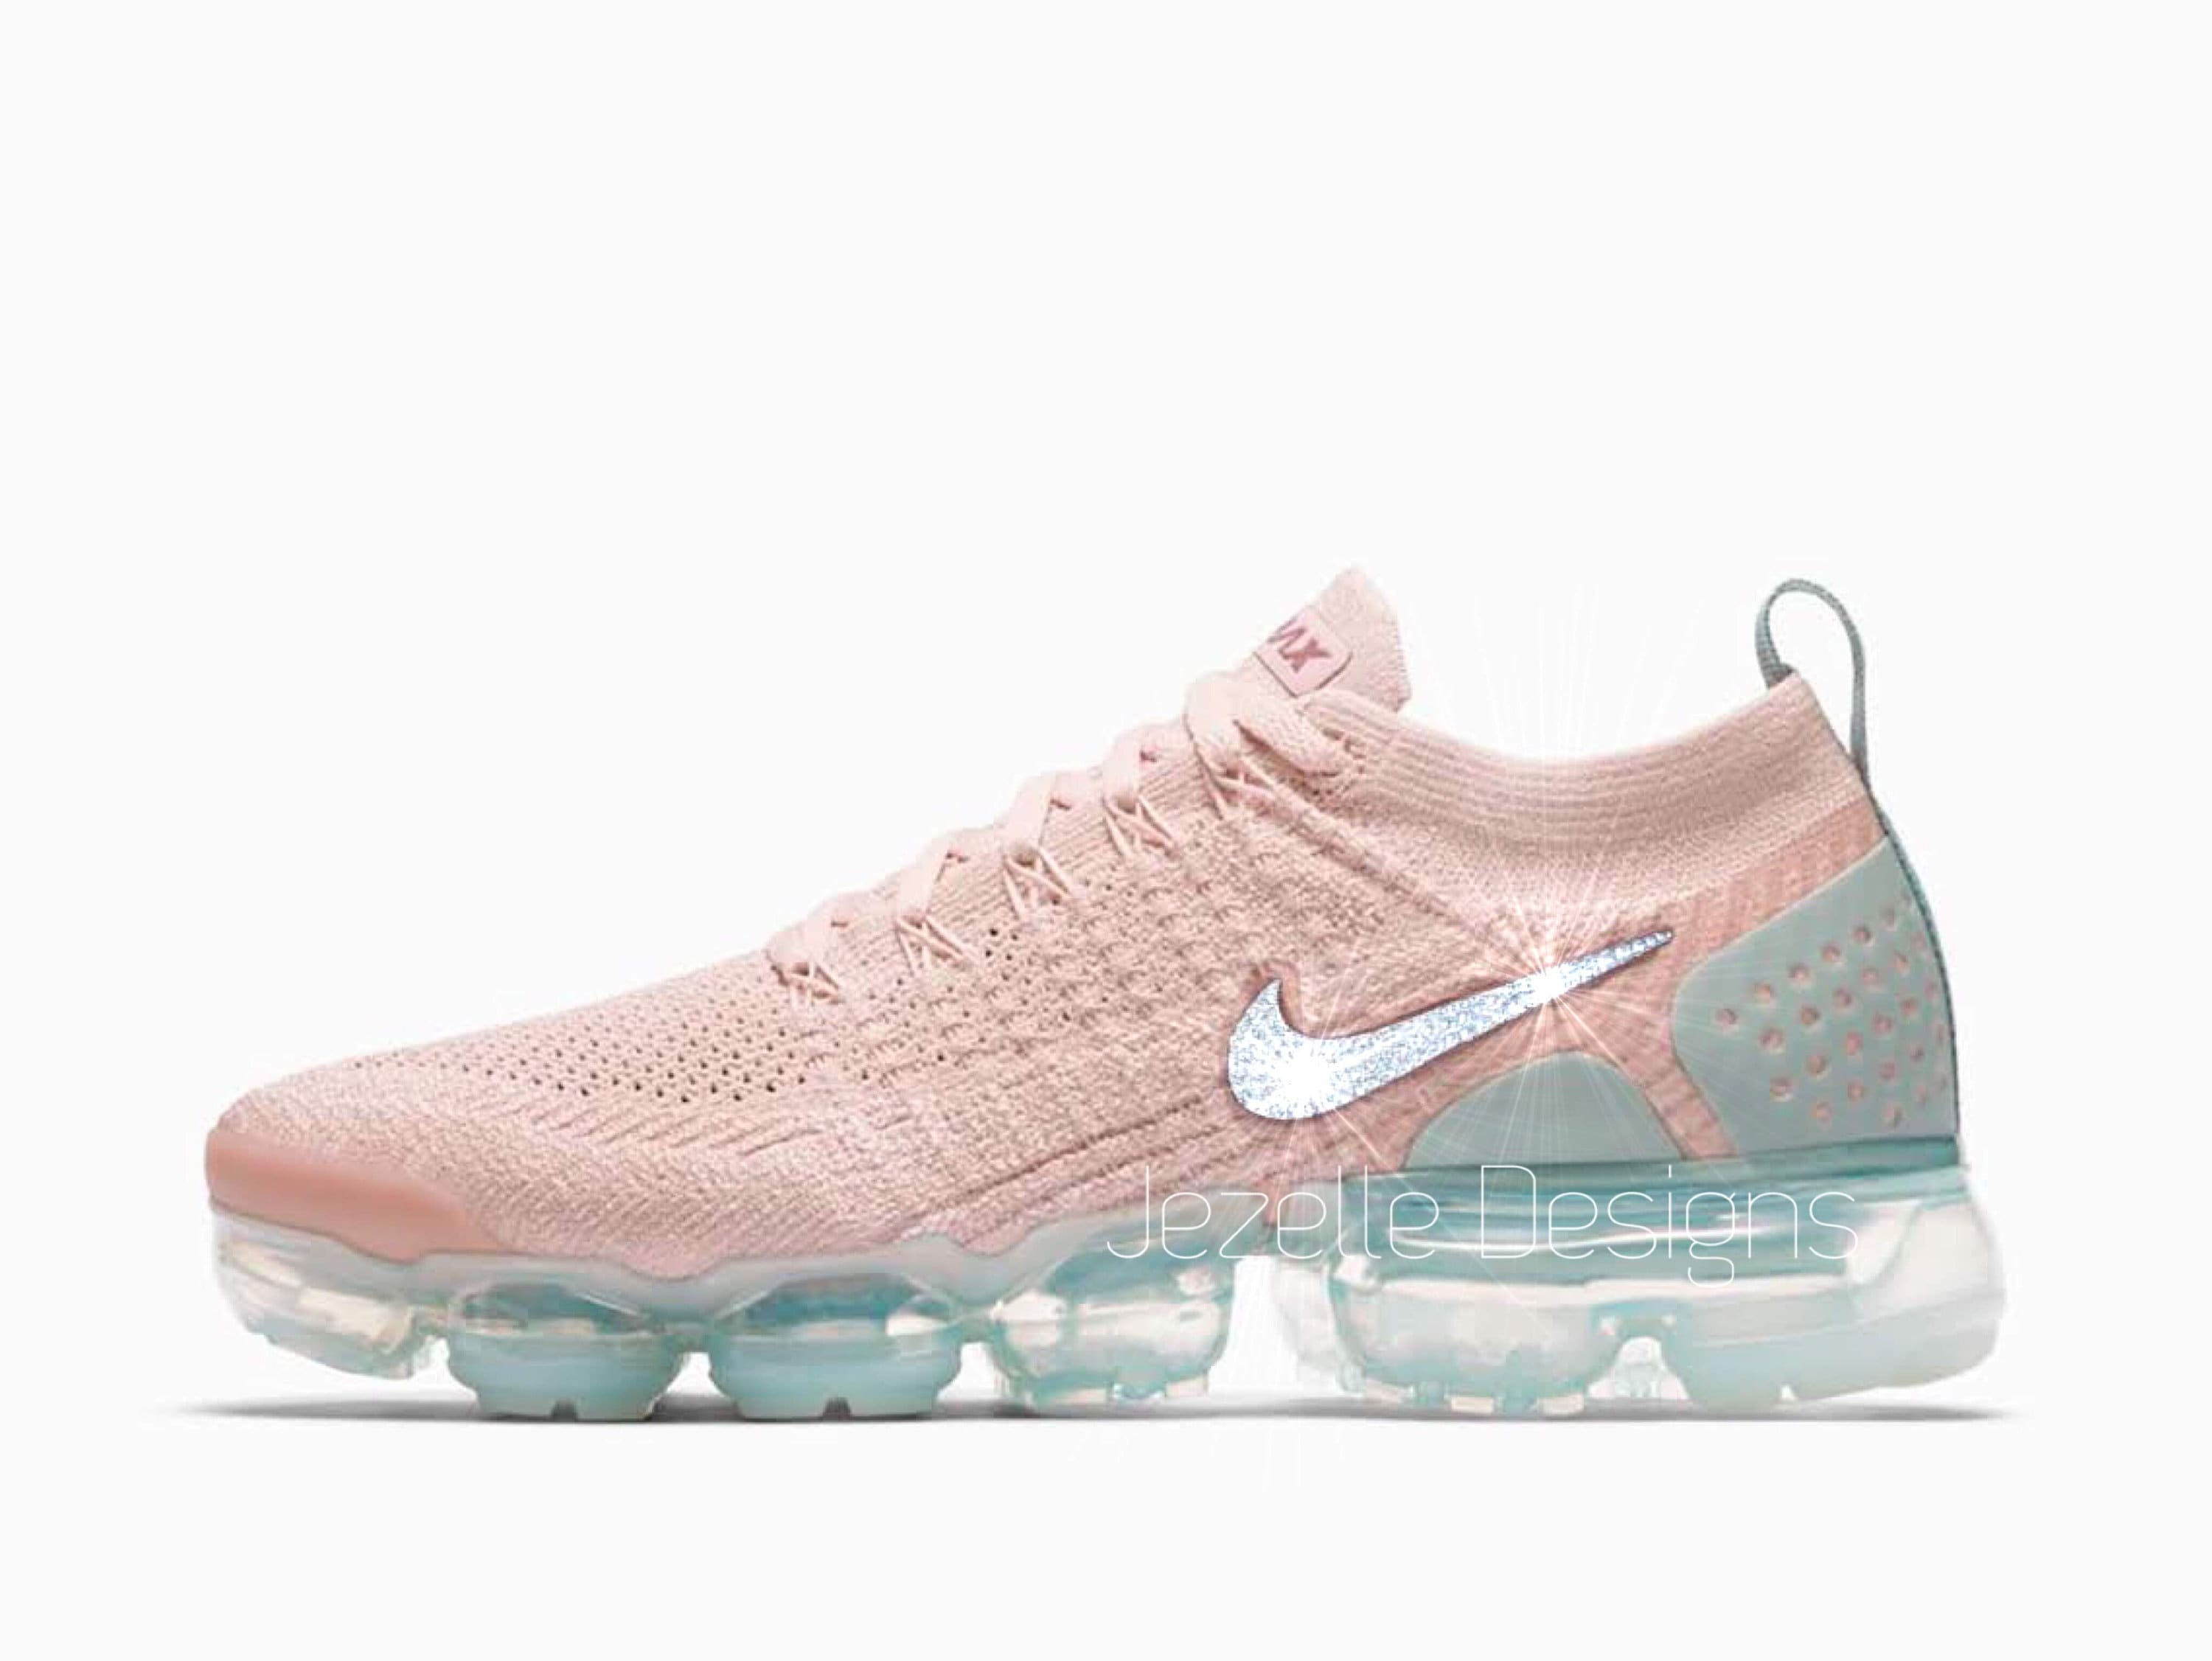 low priced aa2c4 b7b7a Swarovski Nike Womens Air VaporMax Flyknit 2 in Mauve Customized With  Swarovski Crystals Bling Nike Shoes